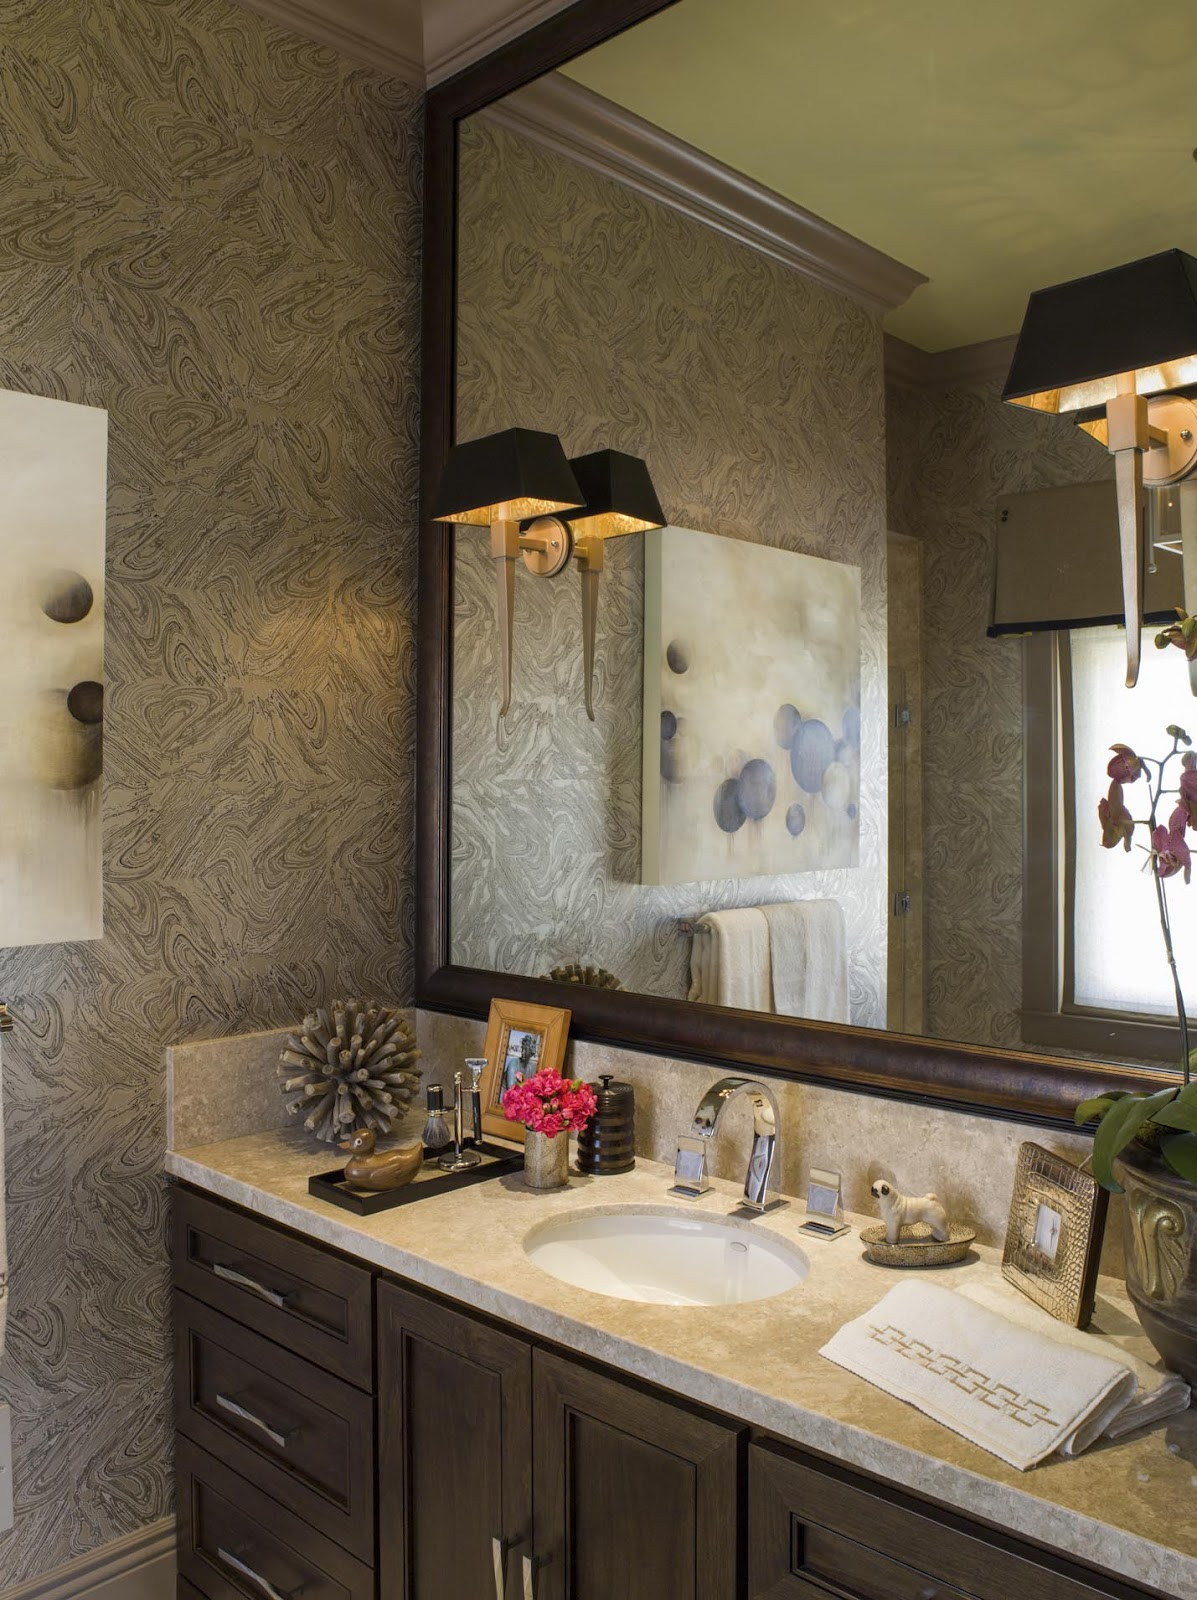 Bathroom wallpaper ideas bathroom wallpaper designs for Wallpaper decorating ideas